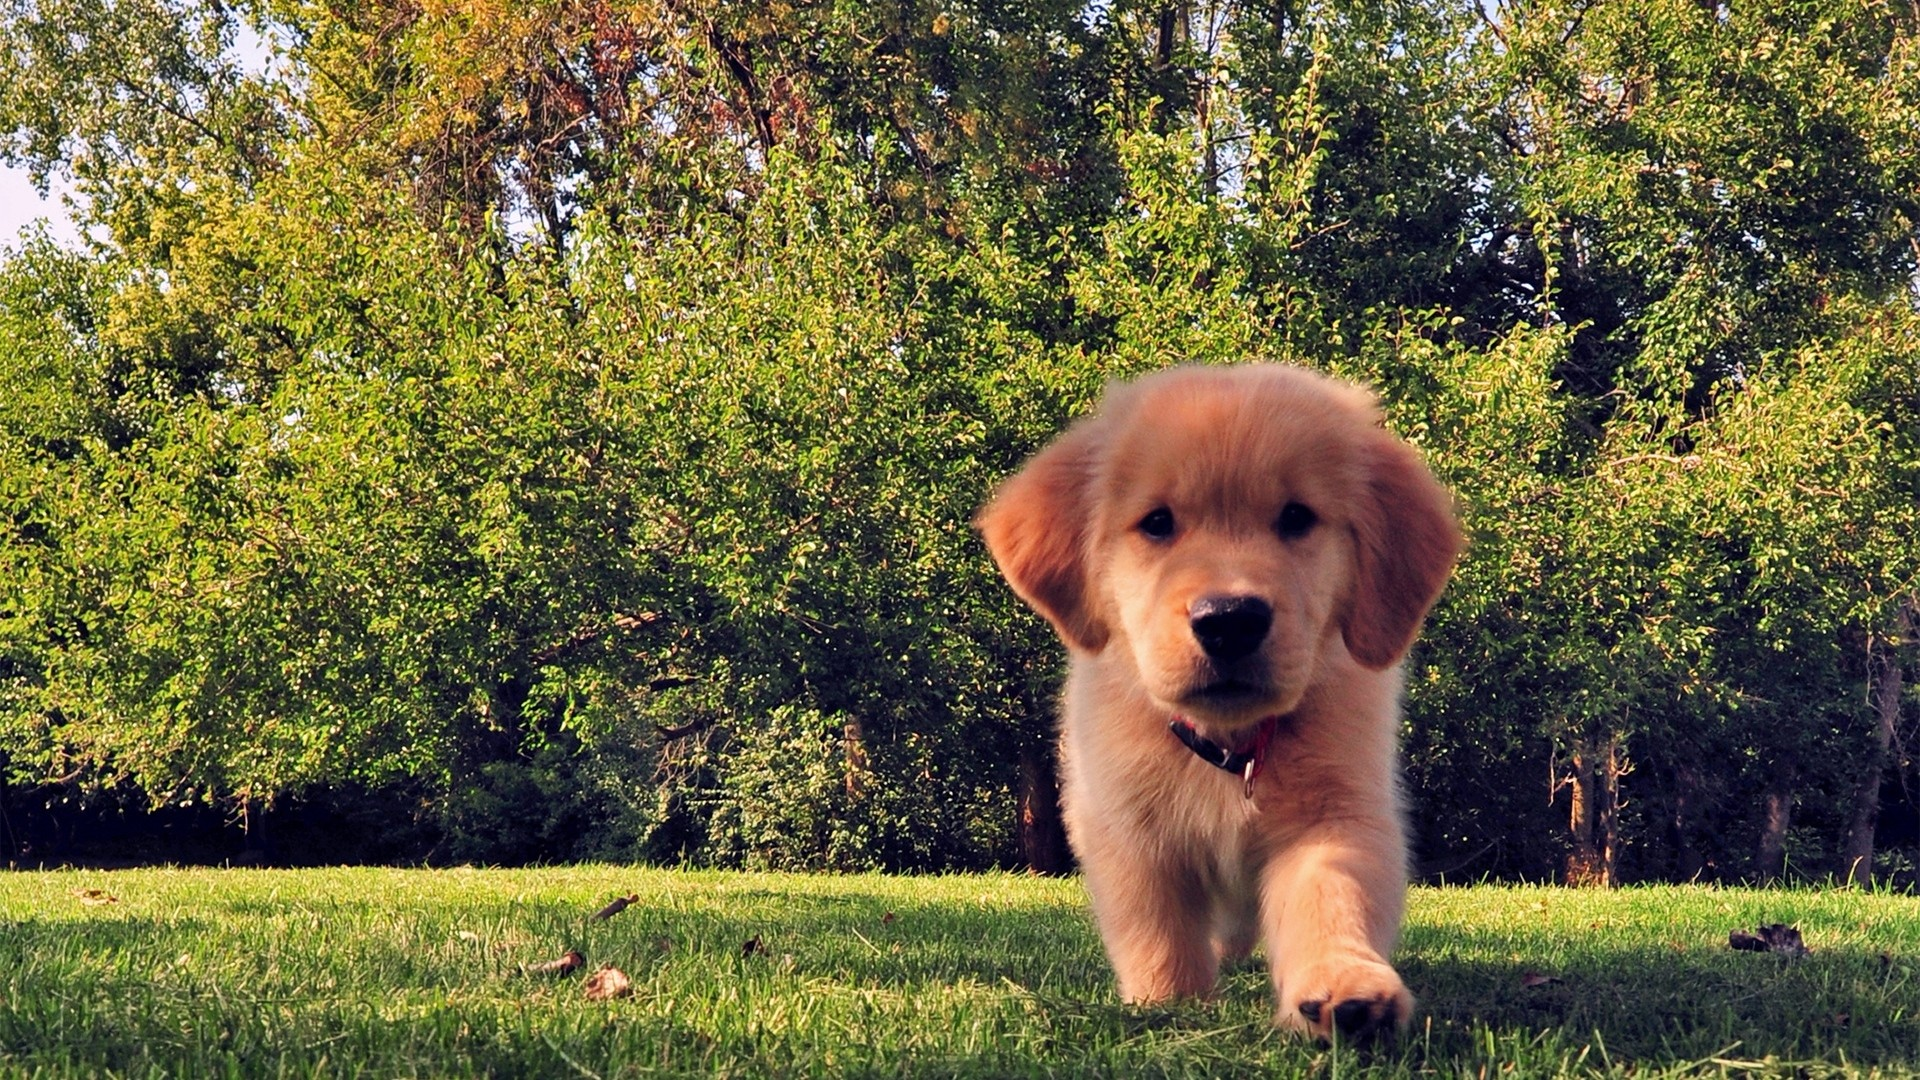 1920x1080 Preview wallpaper funny, summer, dog, puppy, grass